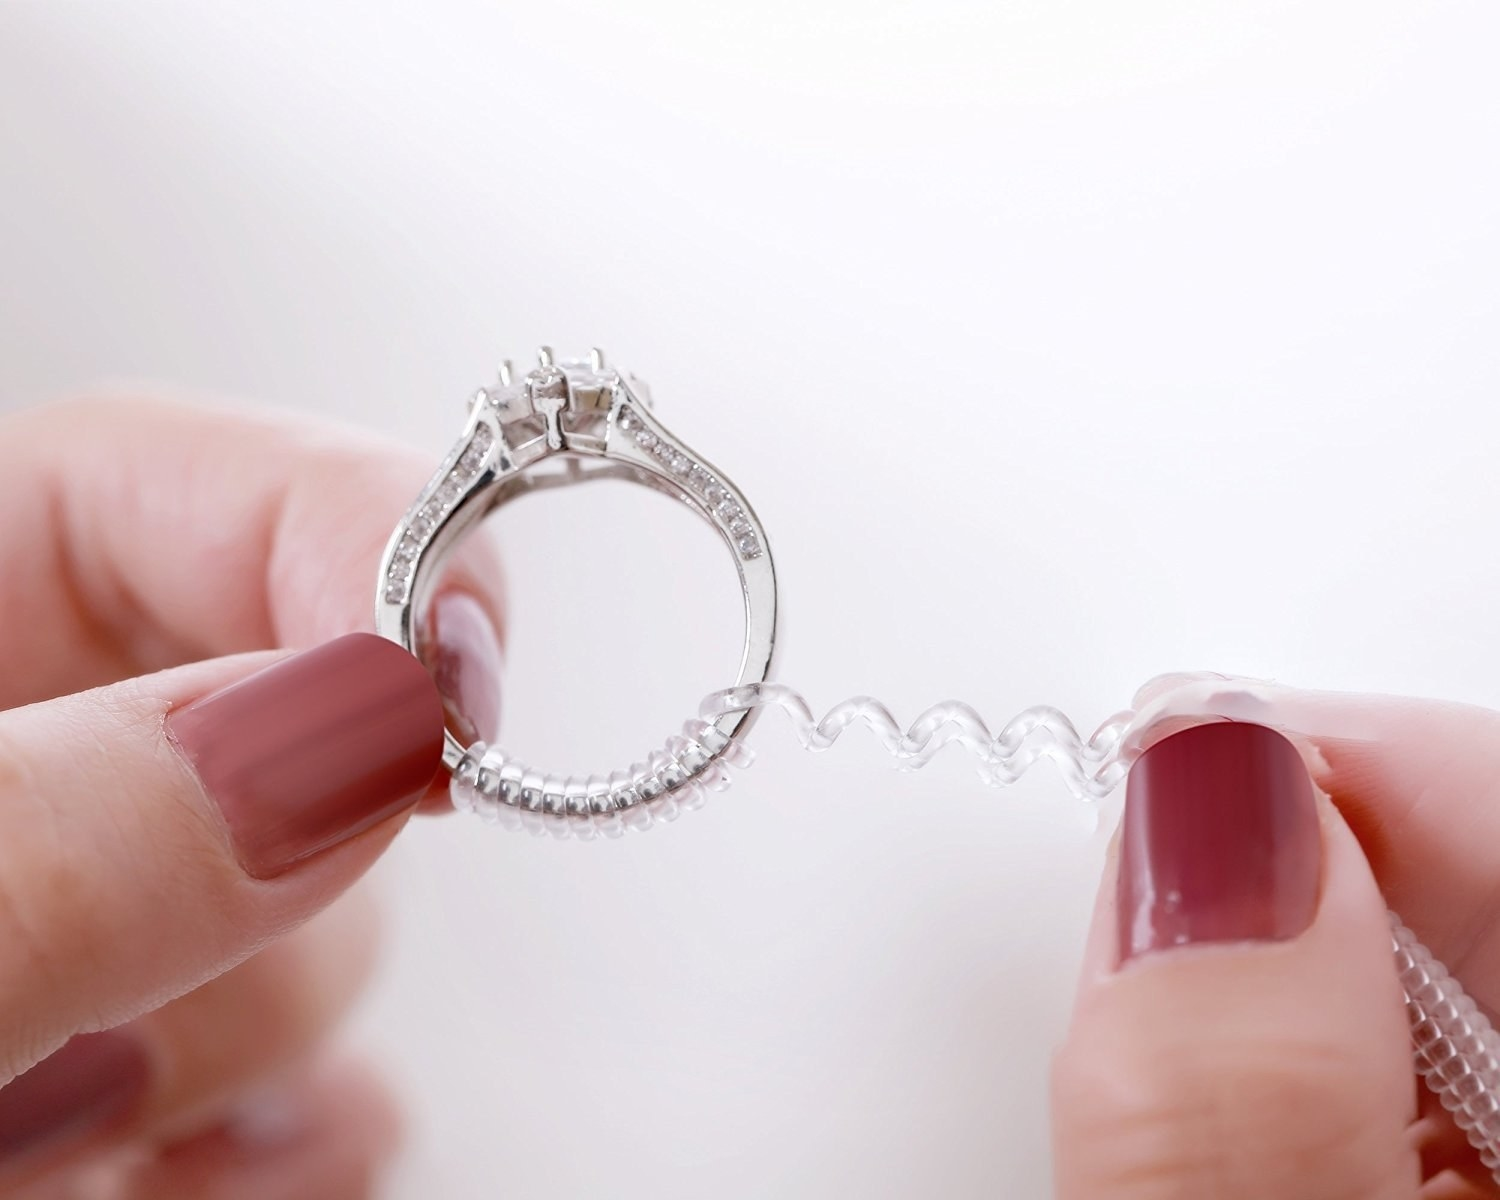 Photo of model wrapping ring size adjuster on ring